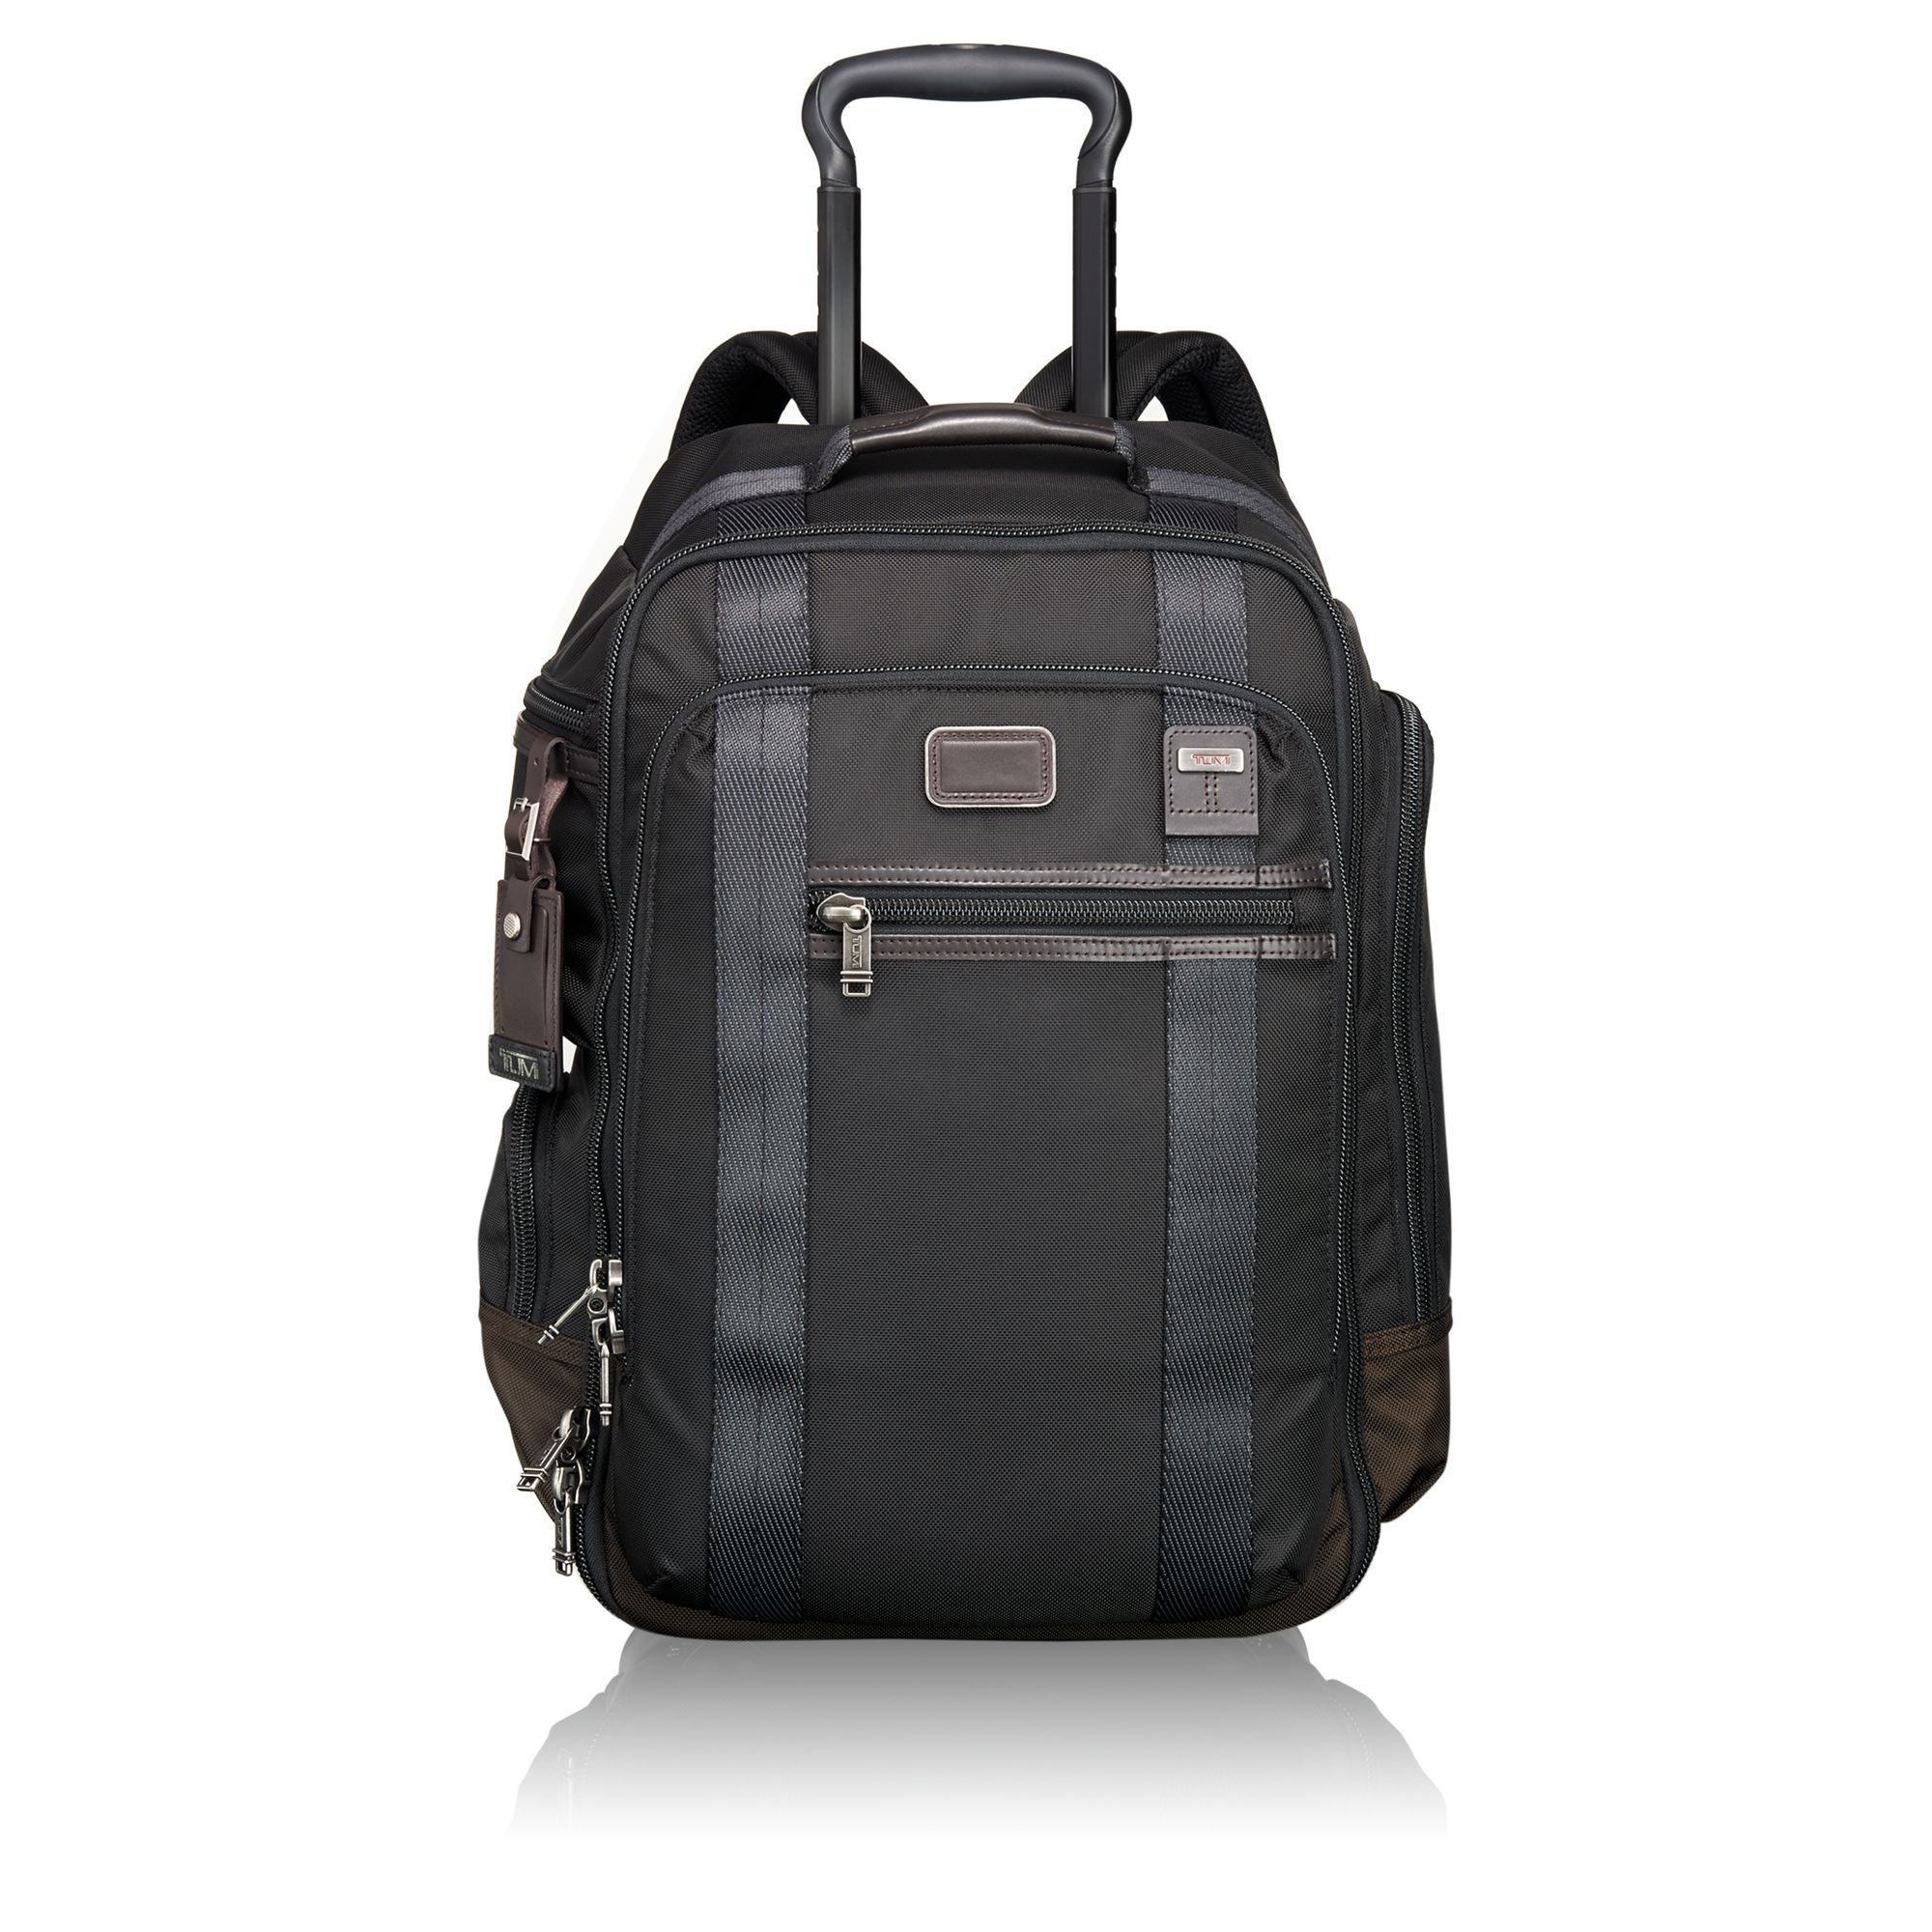 tumi alpha bravo peterson rucksack auf rollen. Black Bedroom Furniture Sets. Home Design Ideas